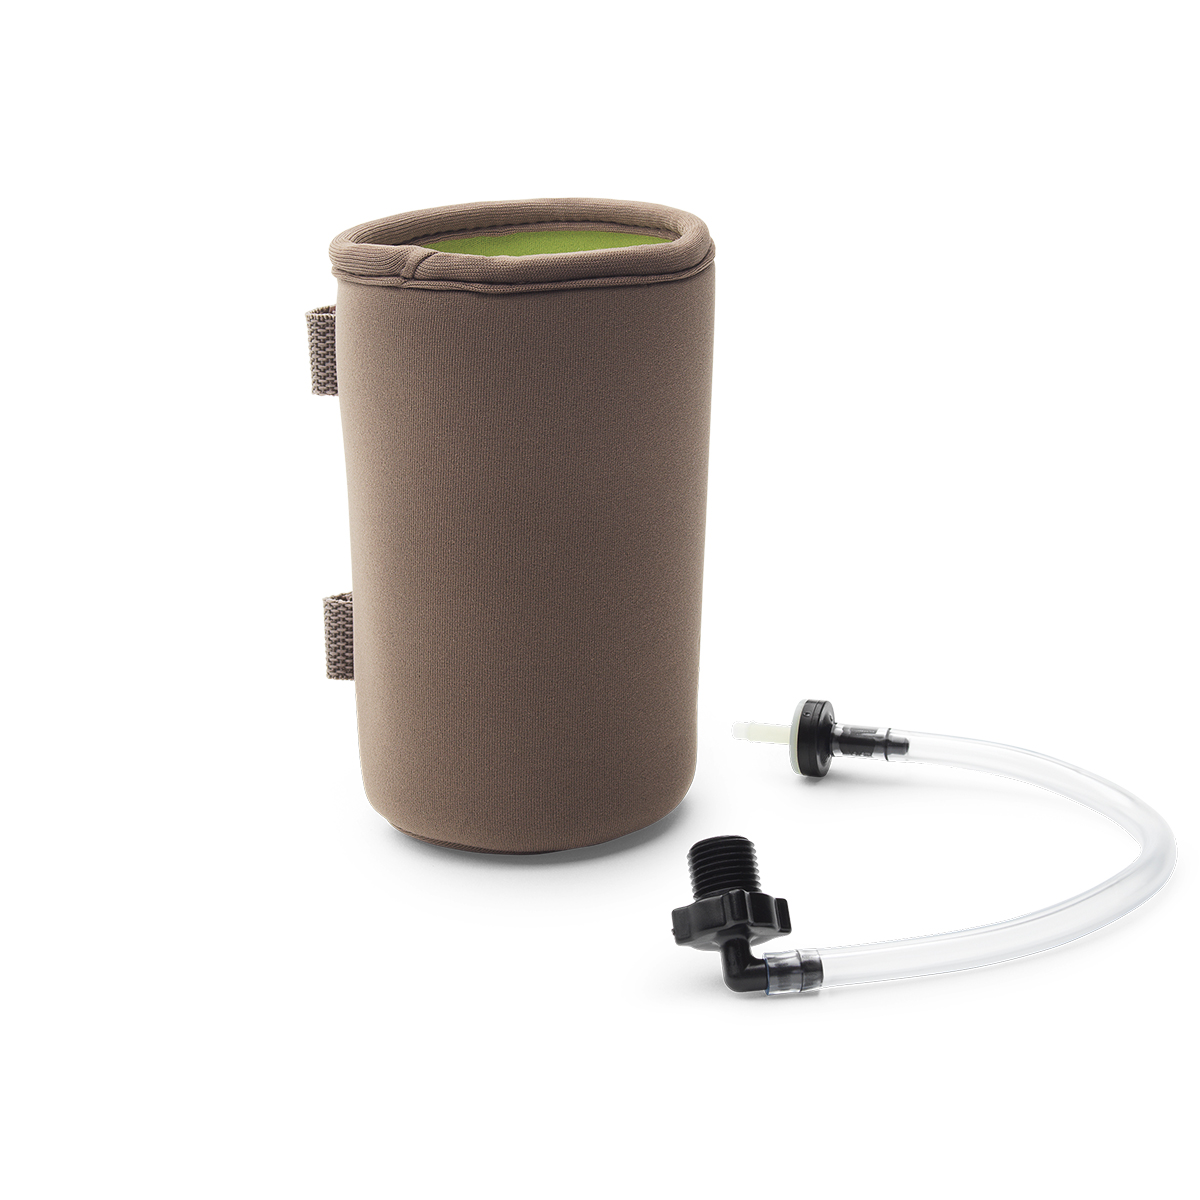 Featured image for: SimplyGo Humidifier Connecting Tube Kit and Pouch